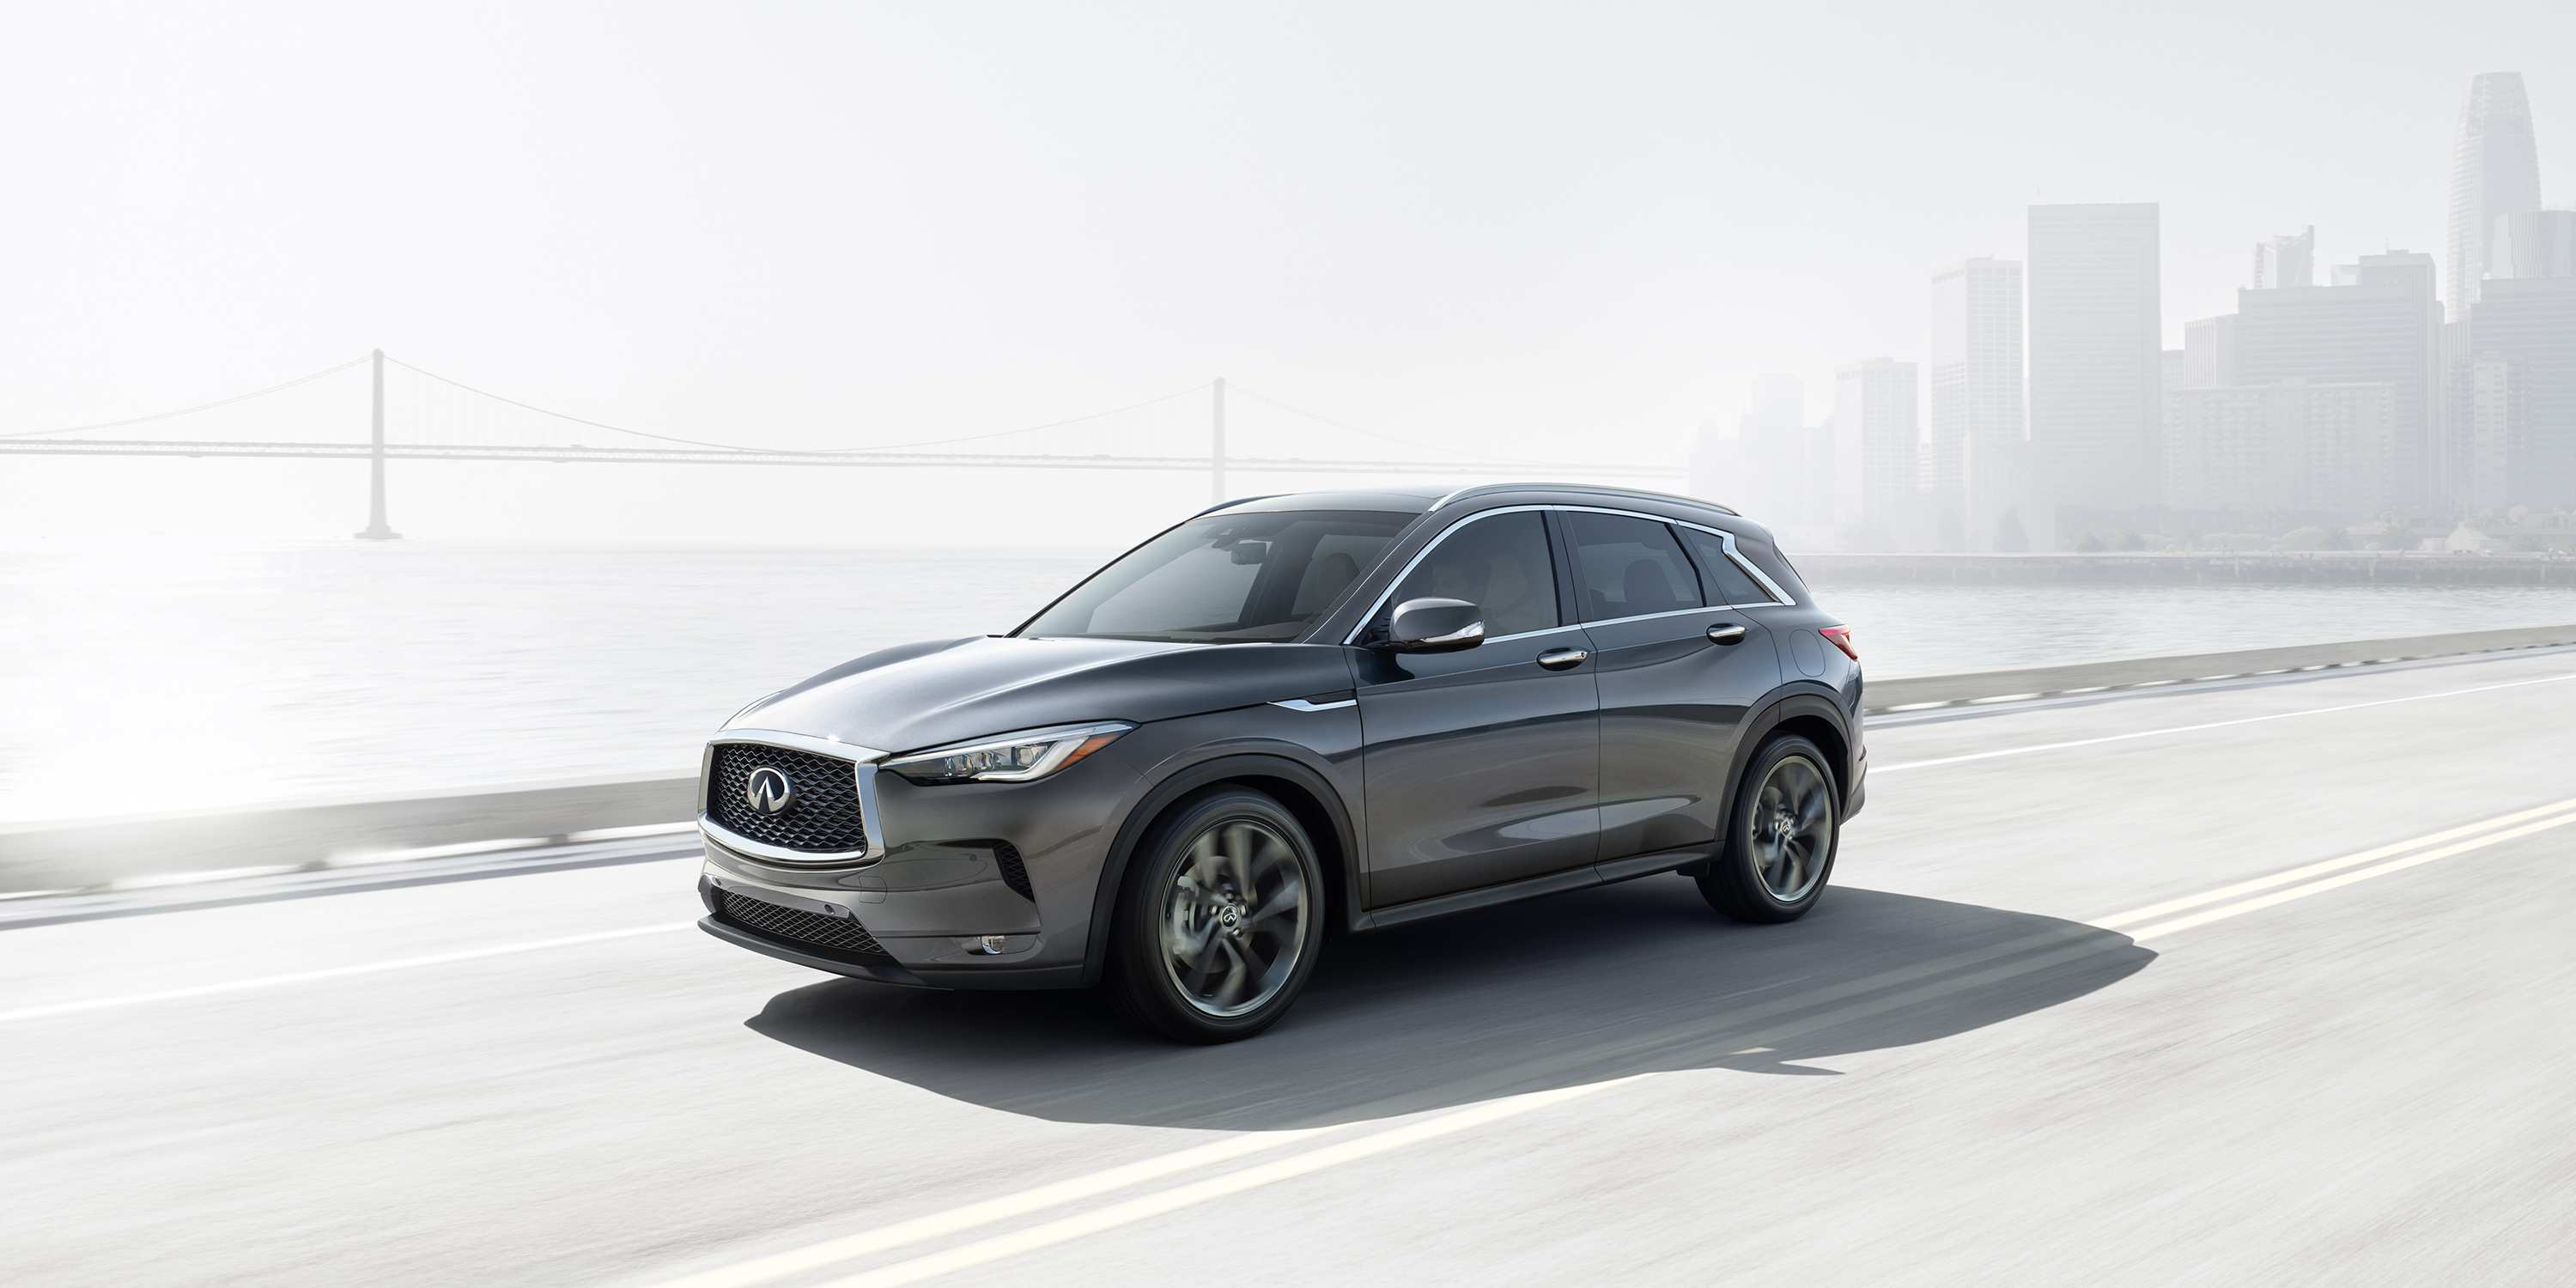 54 The Best 2019 Infiniti Qx50 Crossover Specs